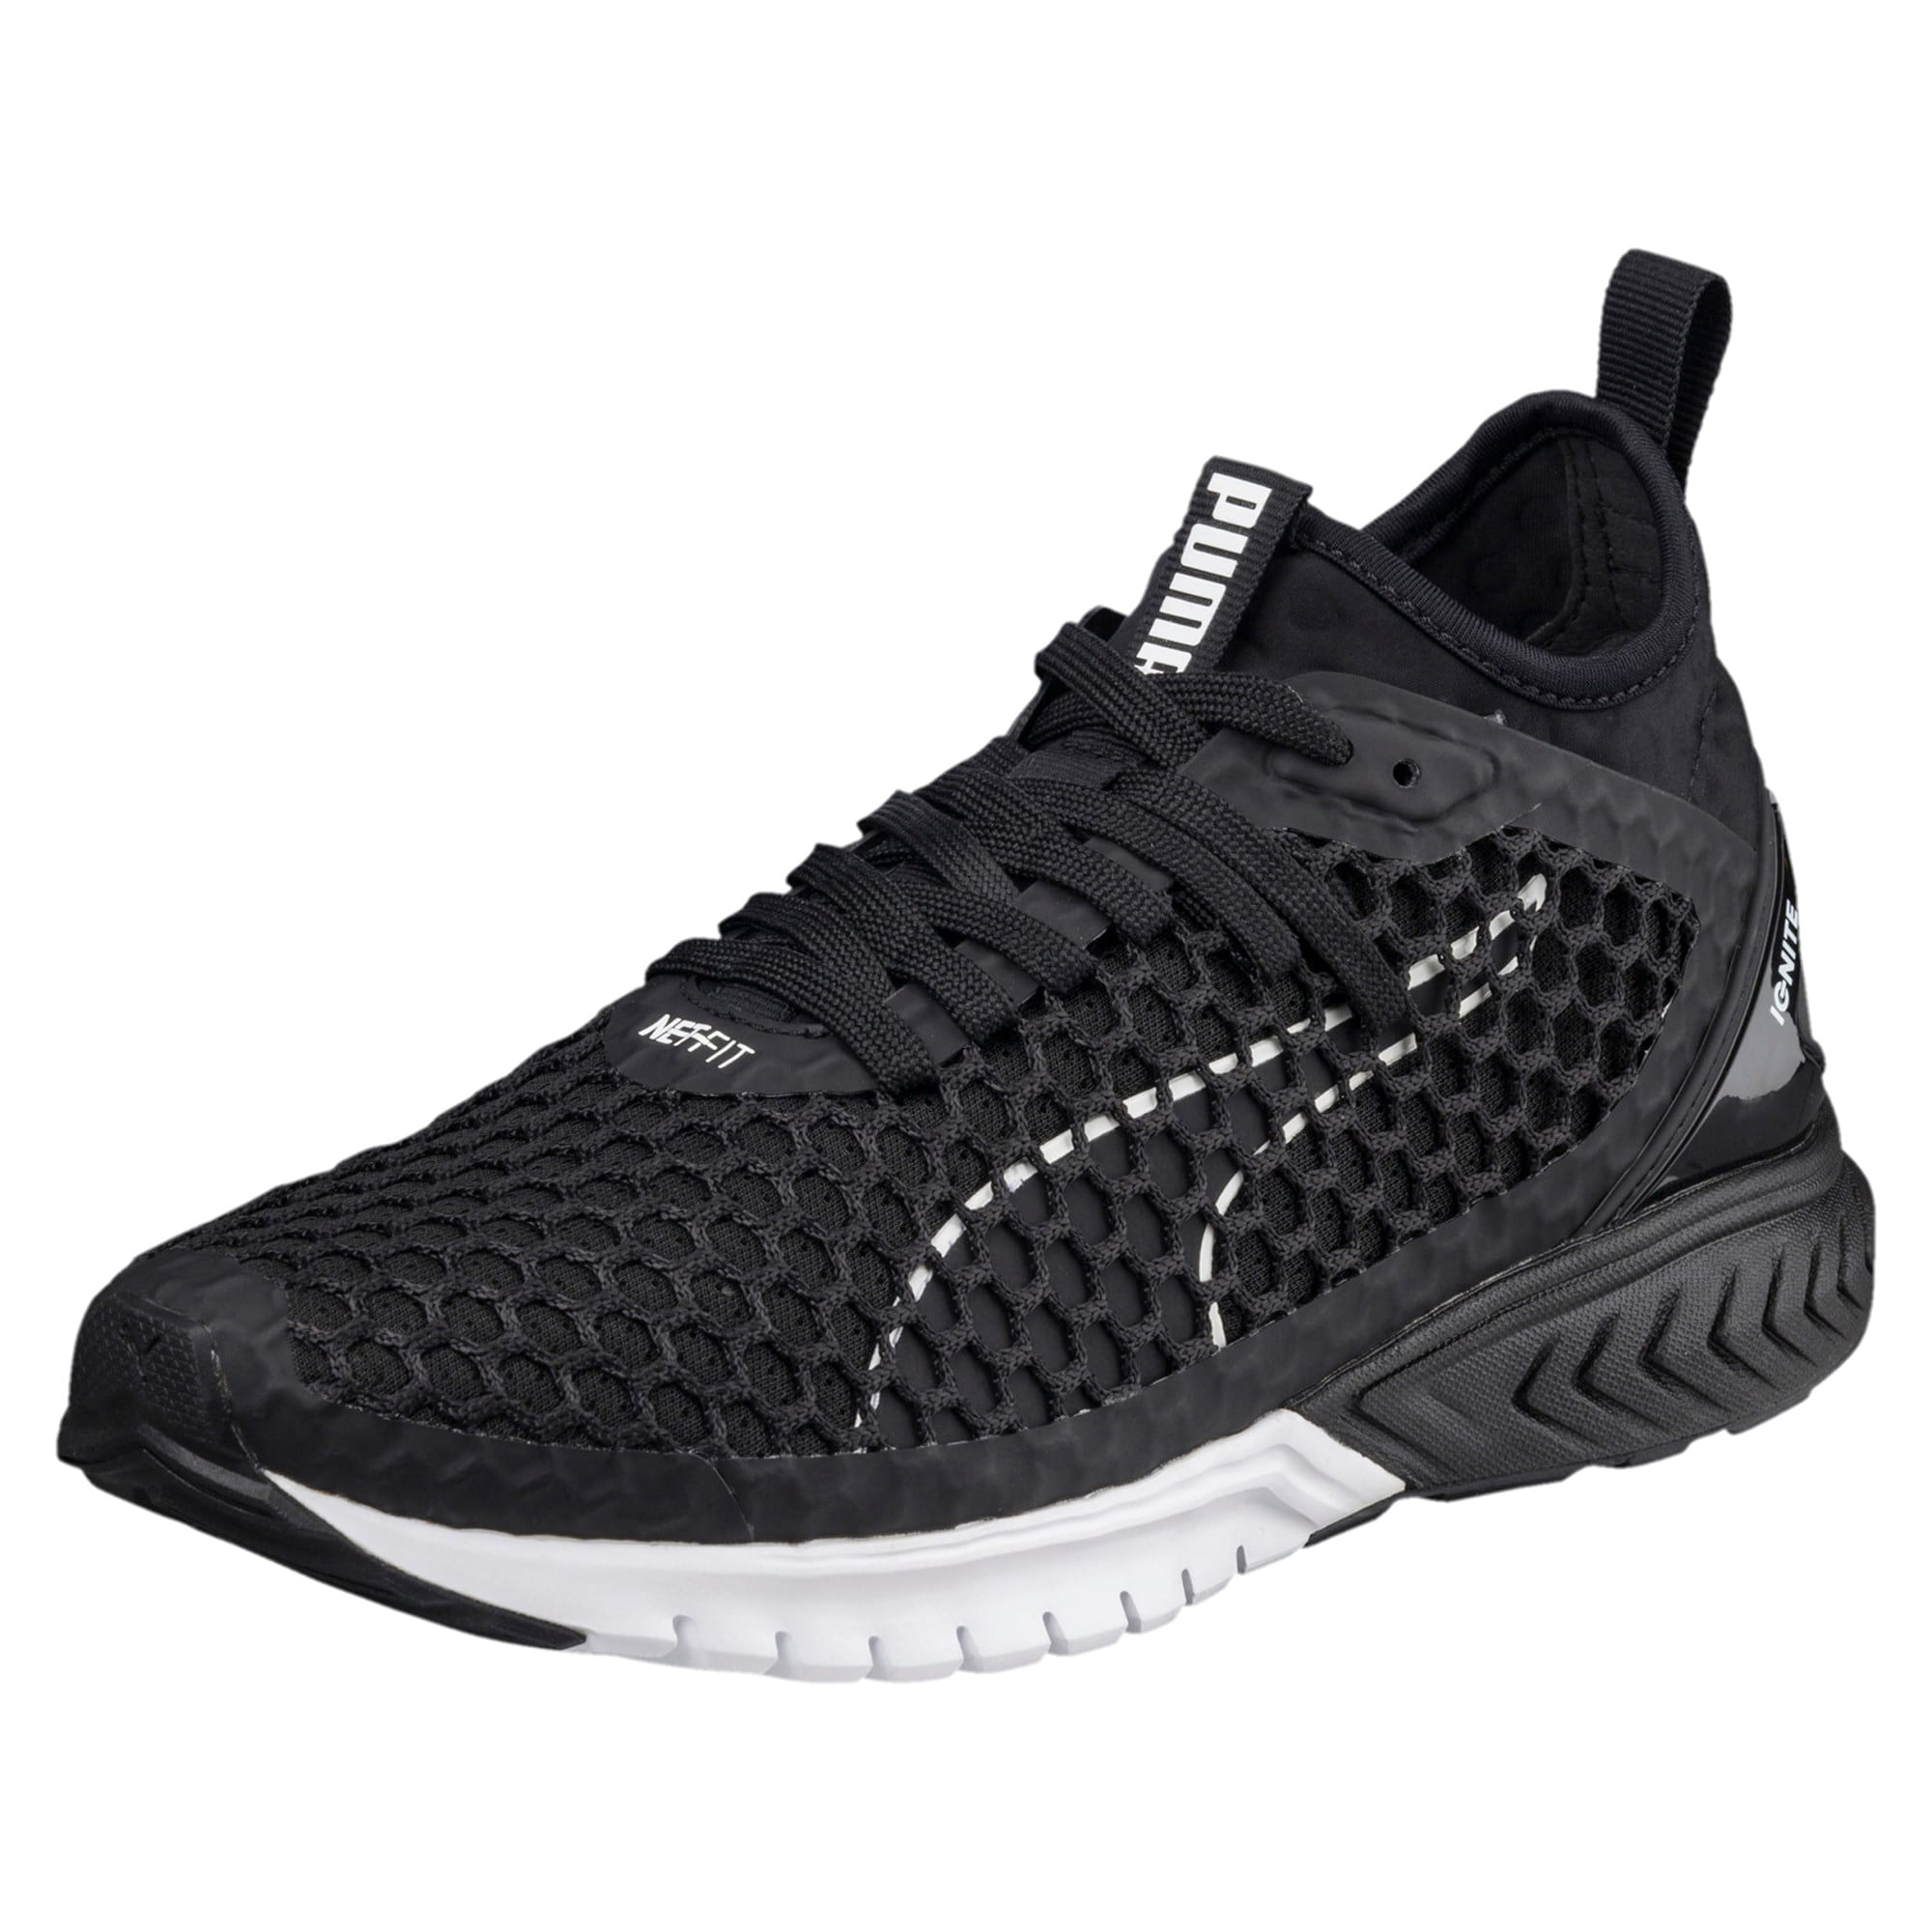 Thumbnail 1 of IGNITE Dual NETFIT Women's Running Shoes, Puma Black-Puma White, medium-IND